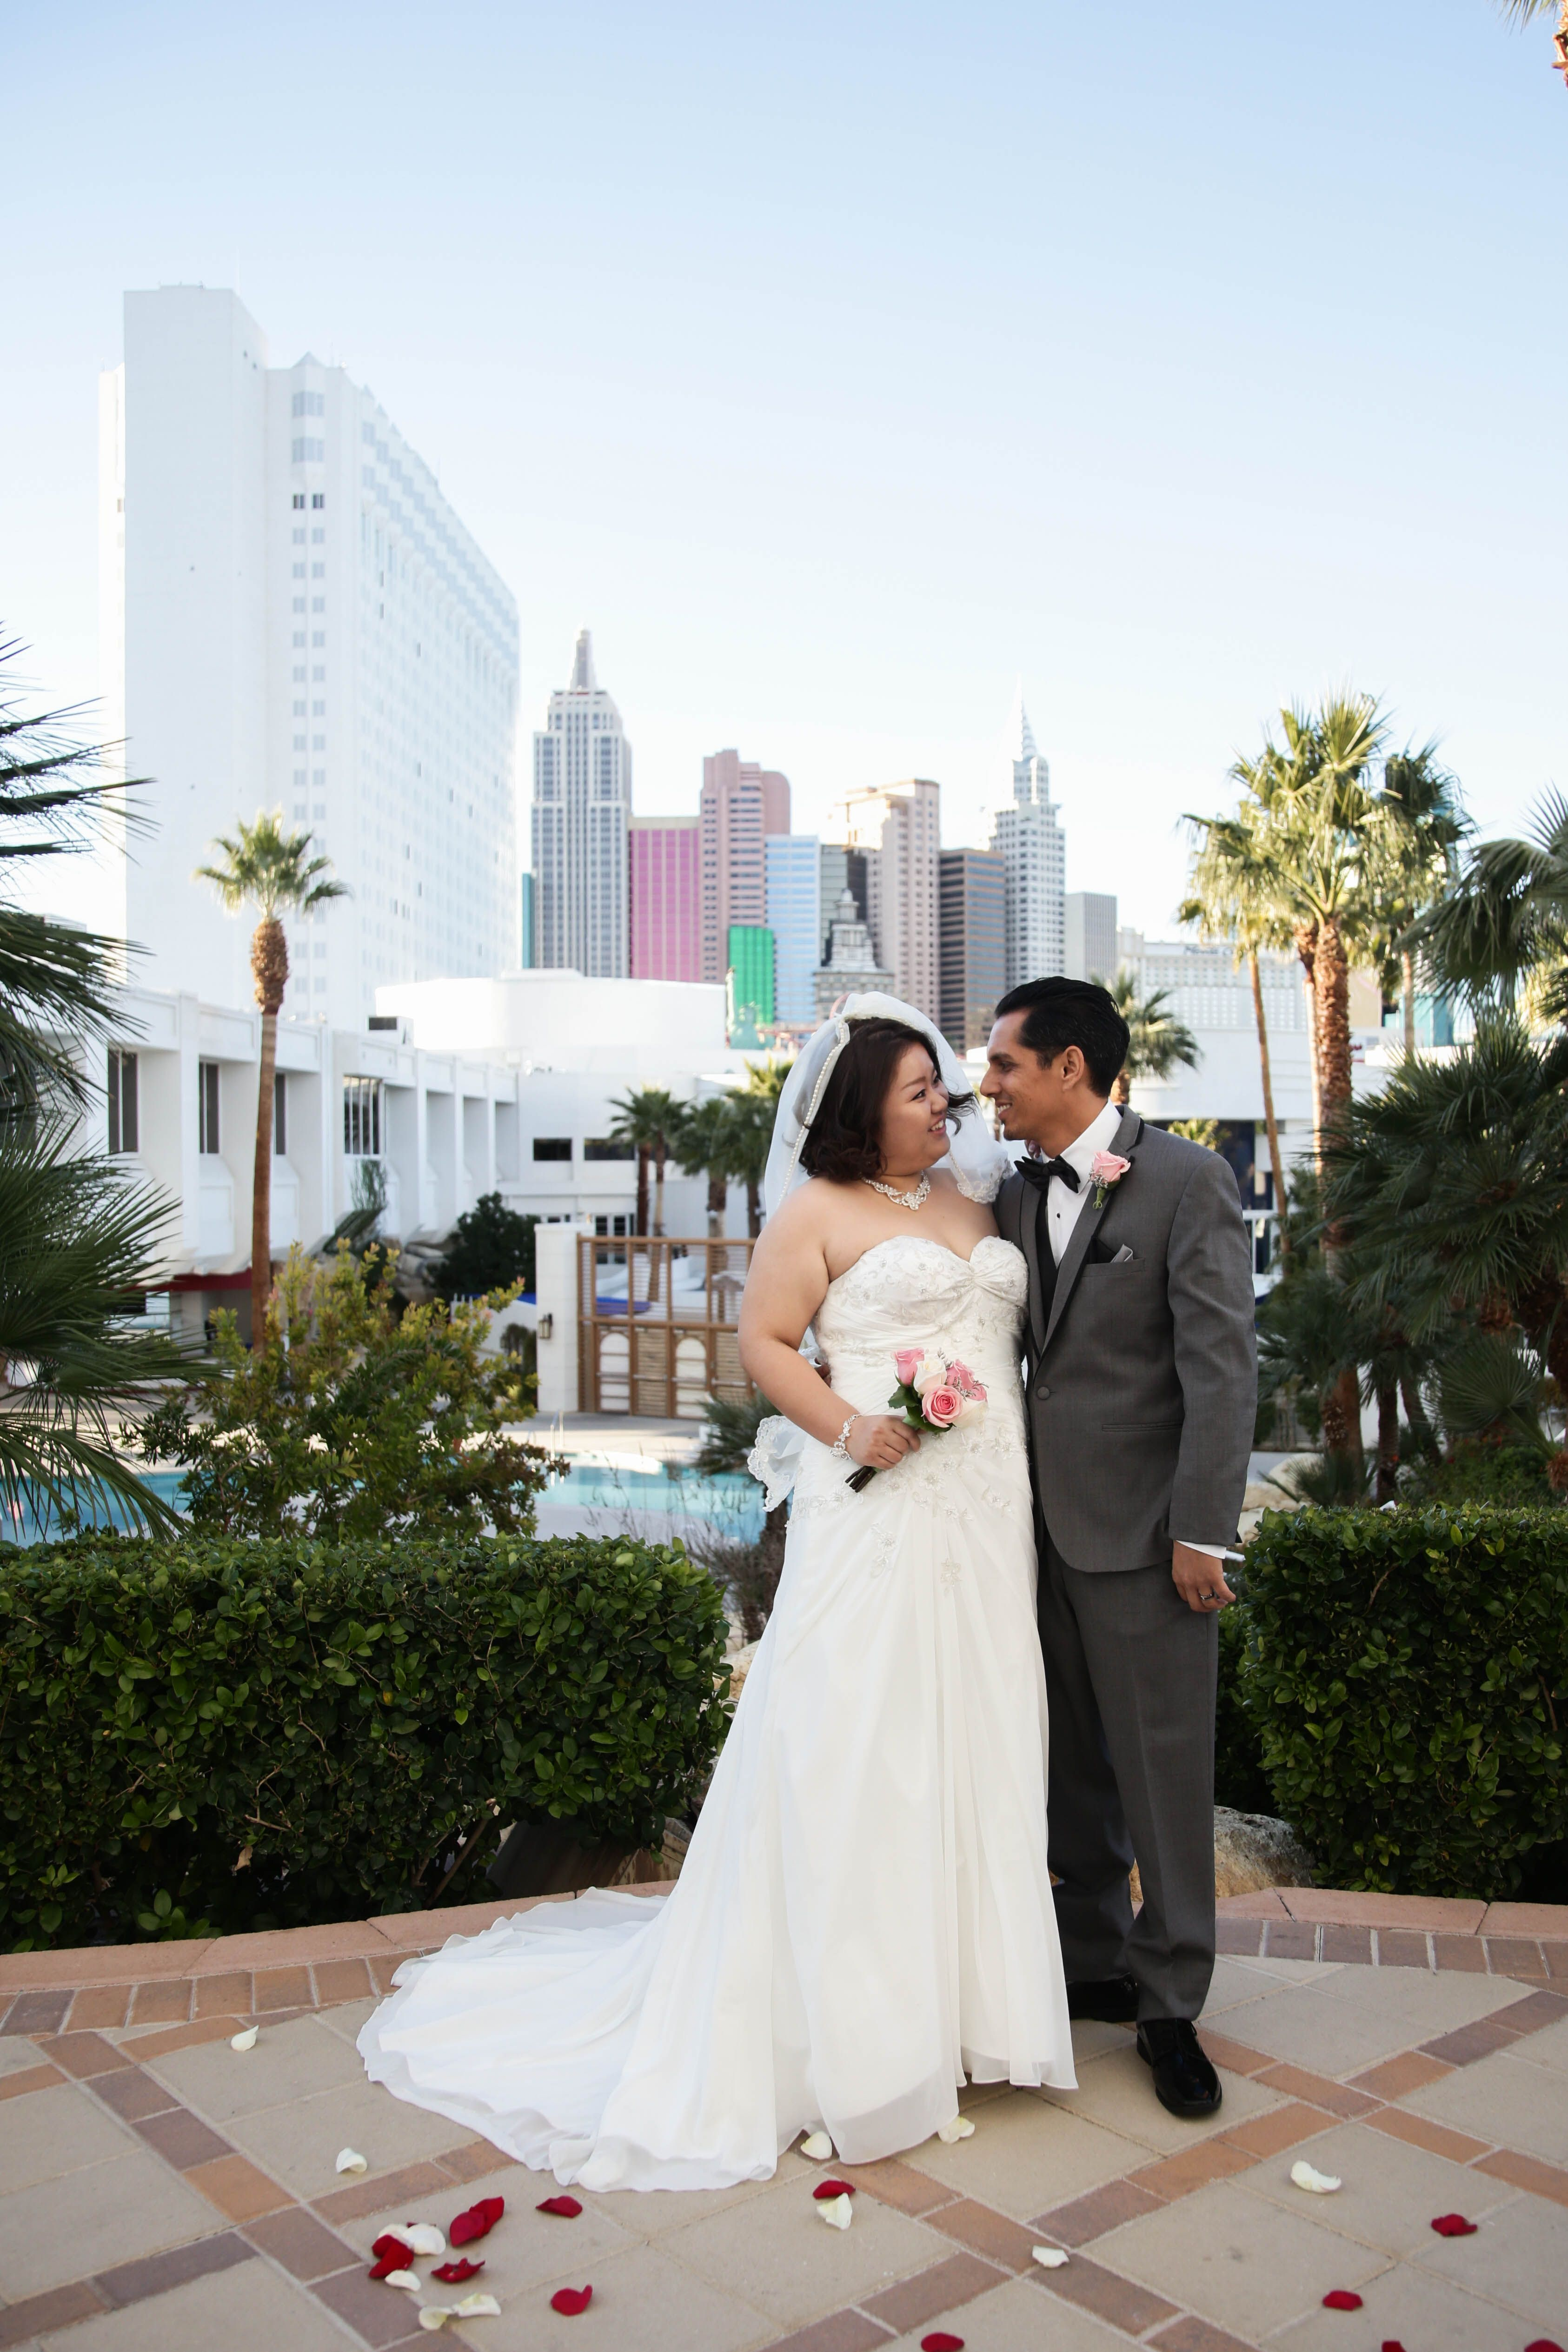 Las Vegas Strip Wedding Location With A View Let The Famous Be Backdrop Affordable PackagesLas